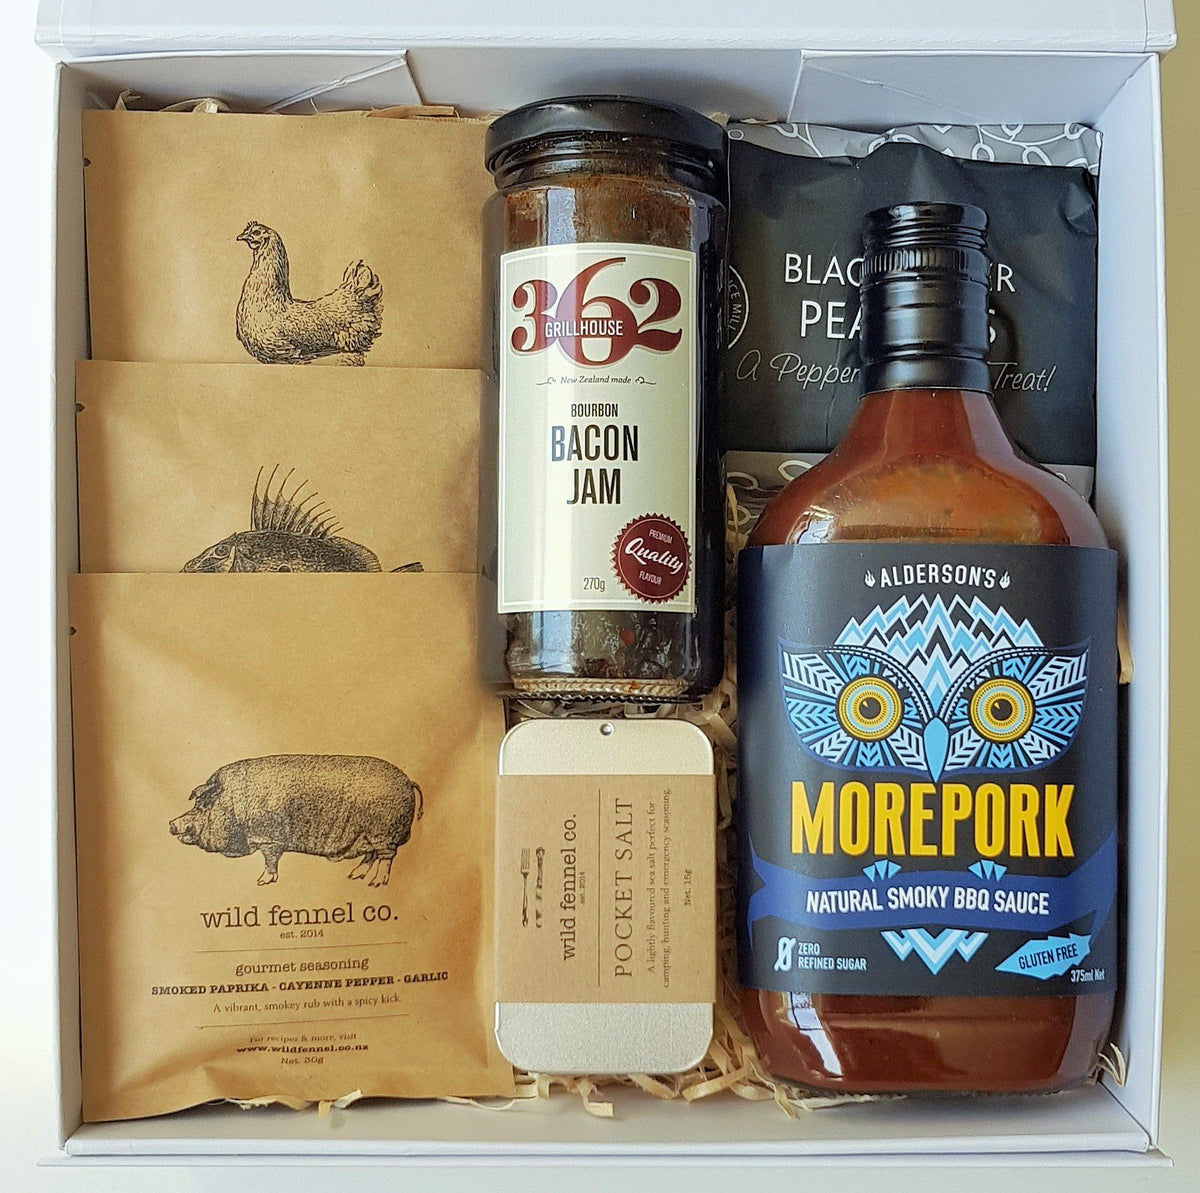 Boxsmith Food Gift Box featuring wild fennel seasonings, aldersons morepork sauce, wild fennel pocket salt, 362 wild south bourbon bacon jam & herb and spice black pepper peanuts. Easy NZ wide delivery of our online NZ food gifts